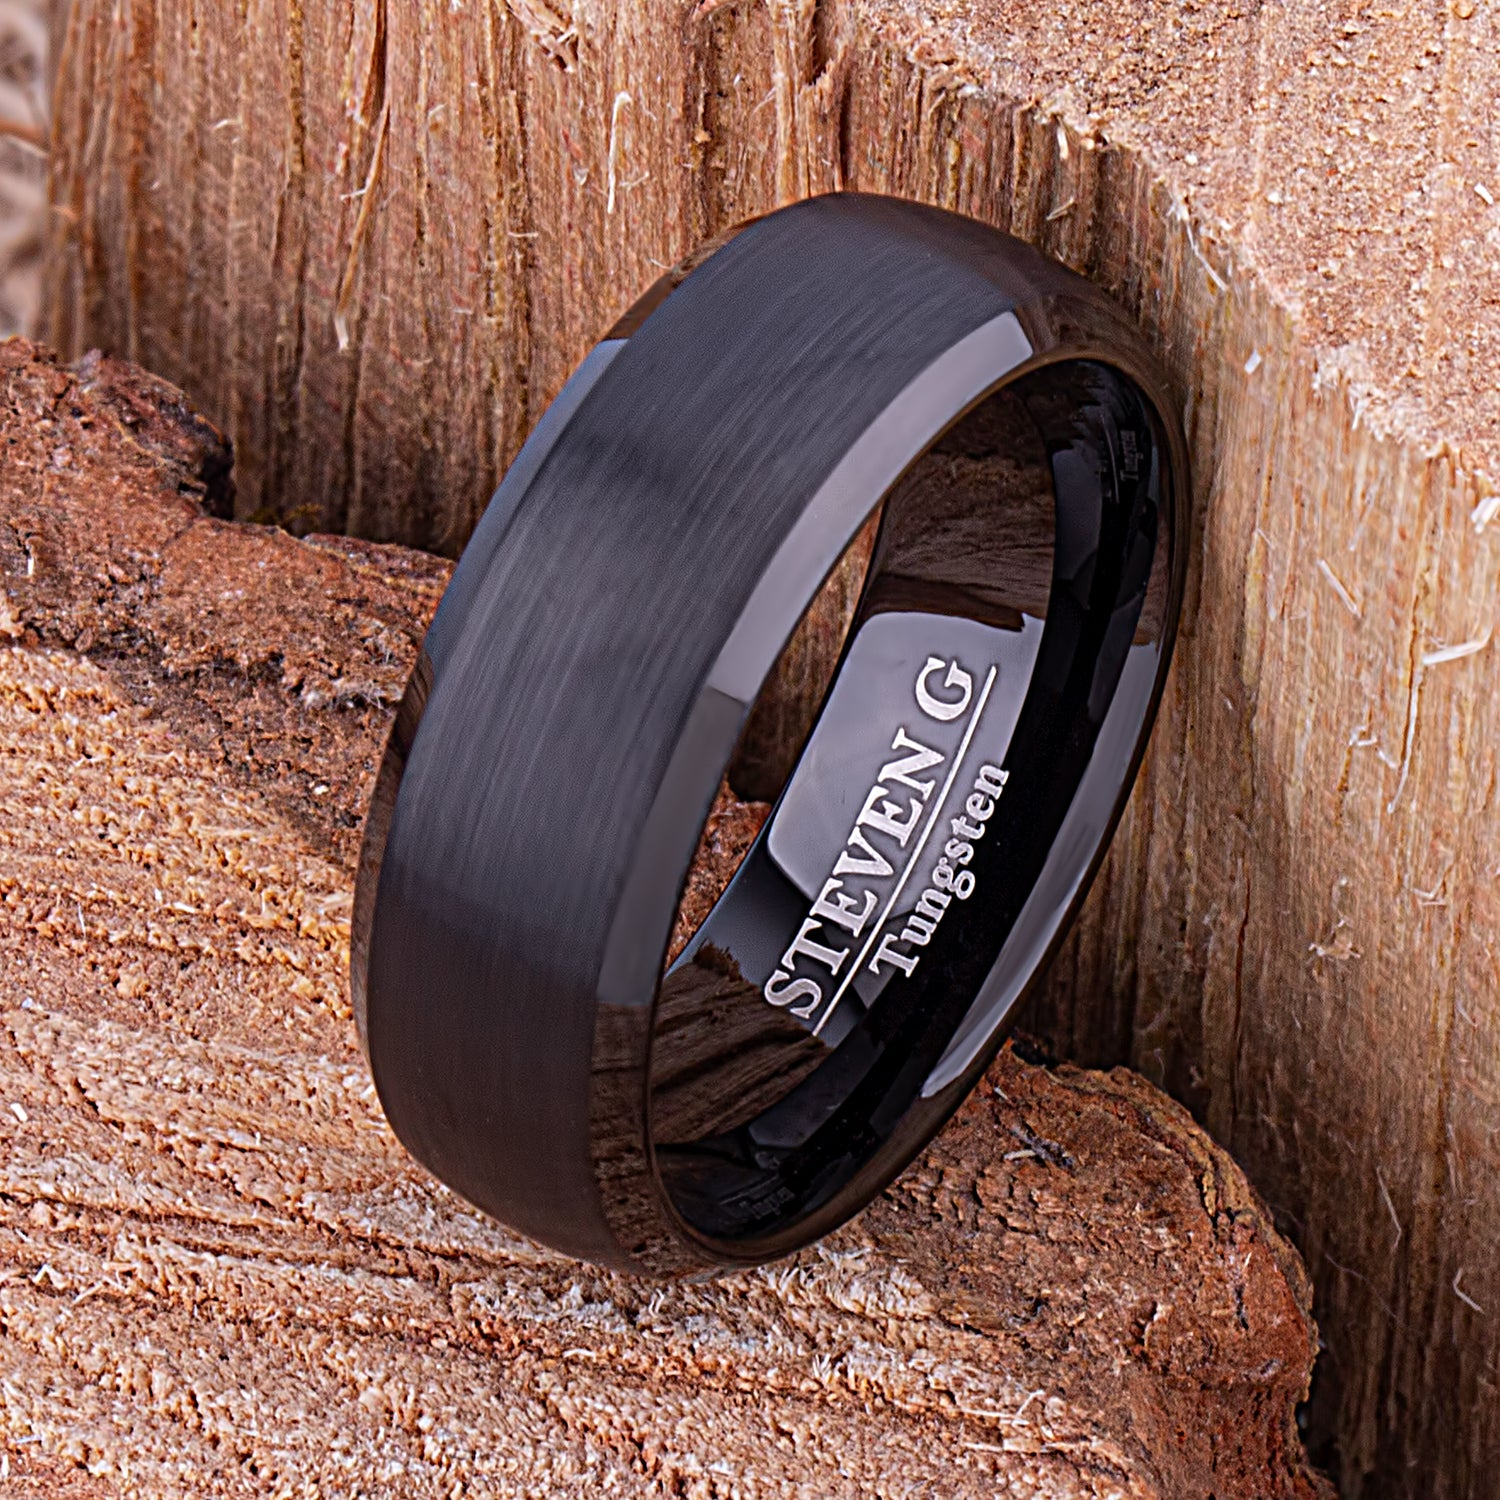 Black Tungsten Mens Wedding Ring, Mans Engagement Band, 8mm Brushed Finished Center Beveled Edge, Promise Ring for Him, Tungsten Ring Gift - TCR143